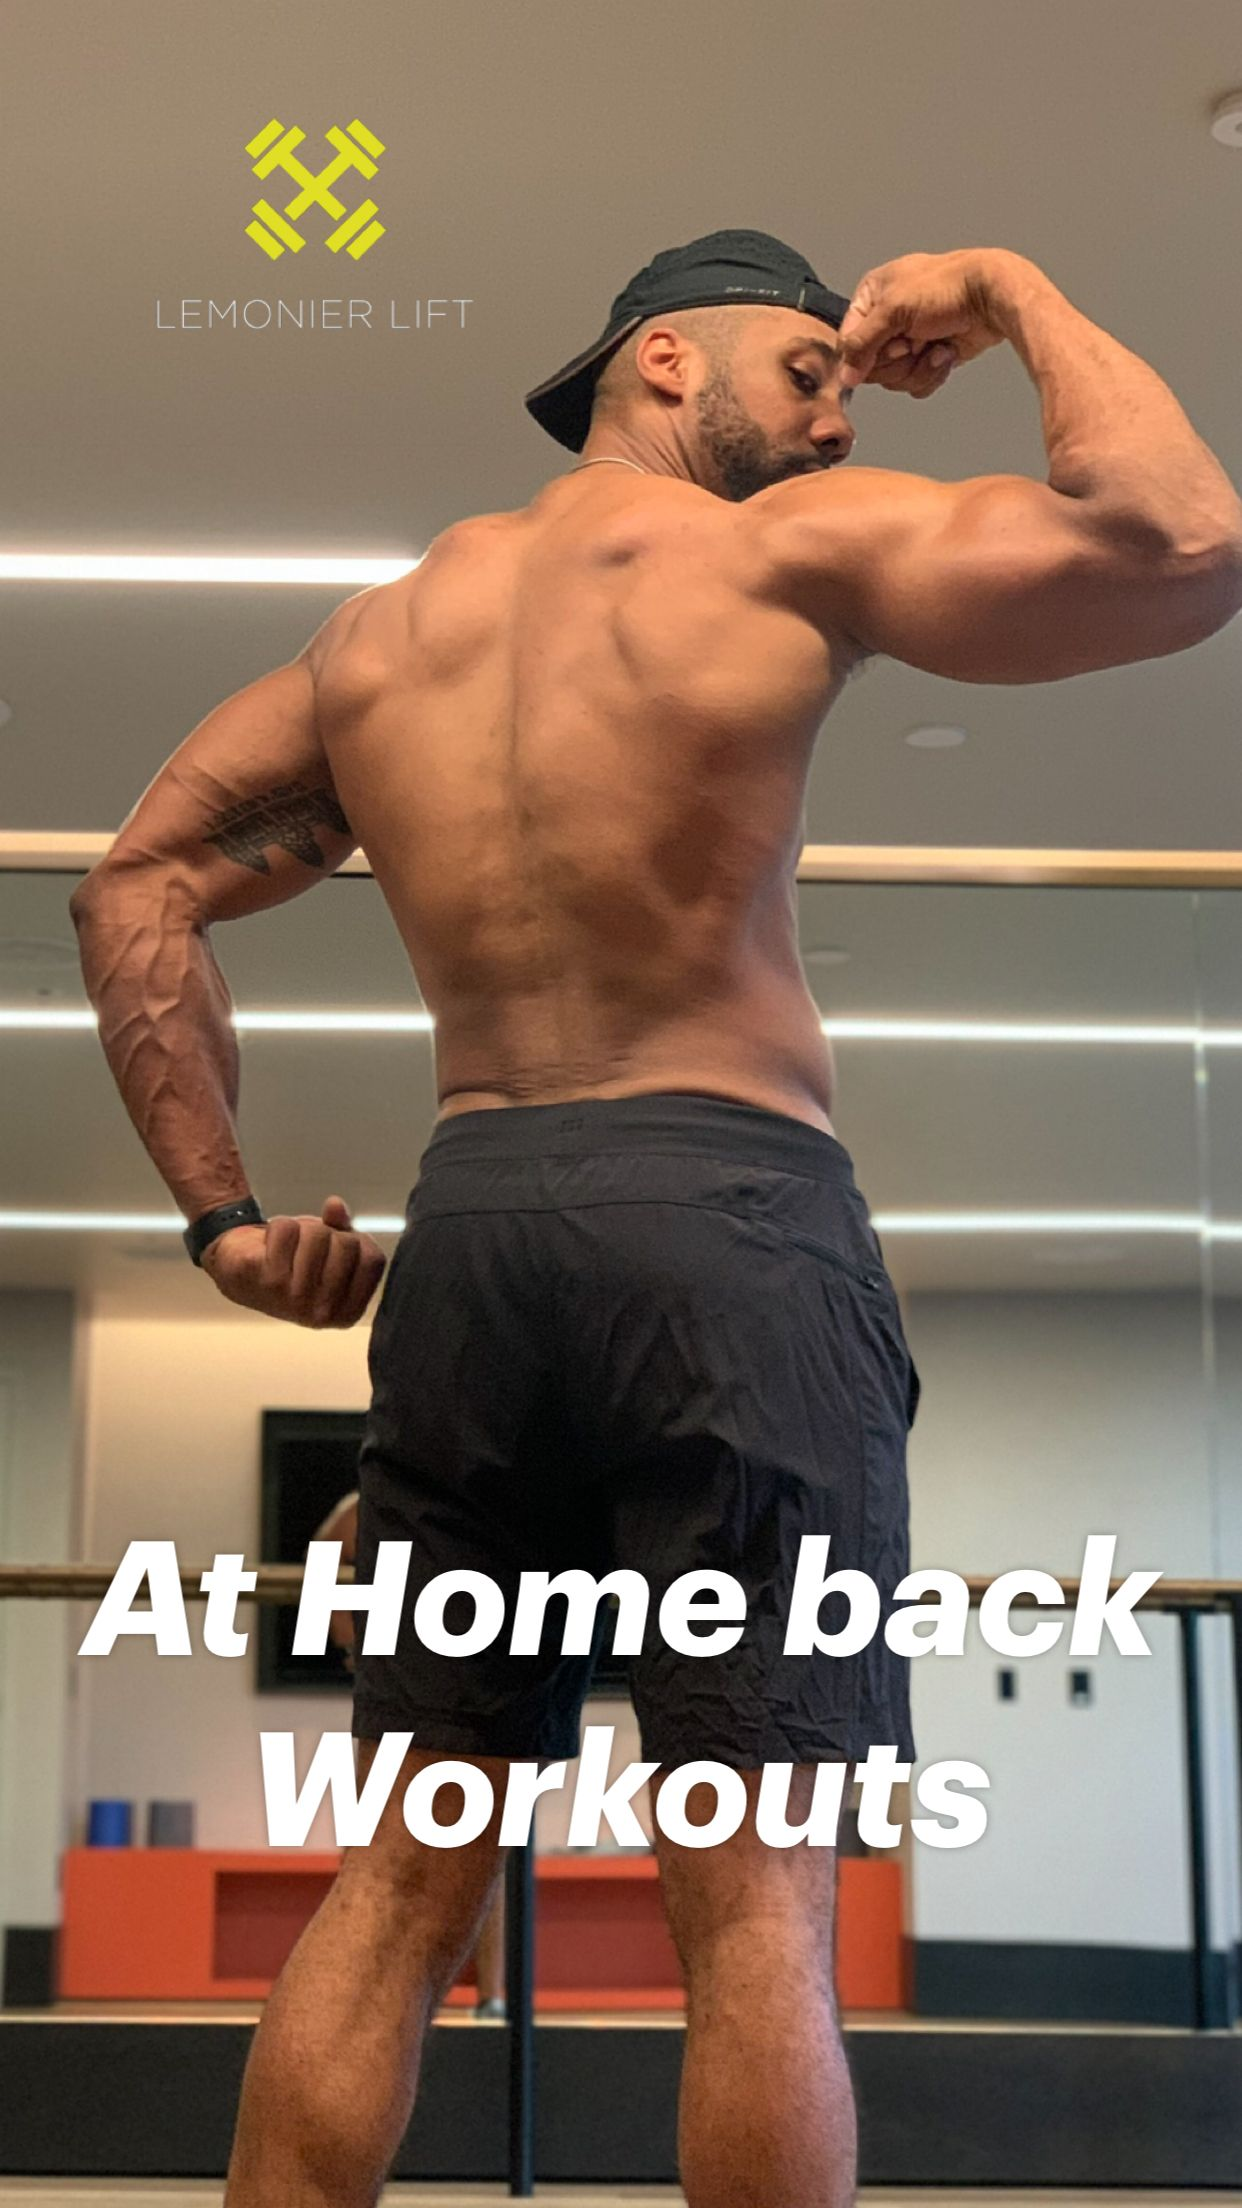 At Home back Workouts